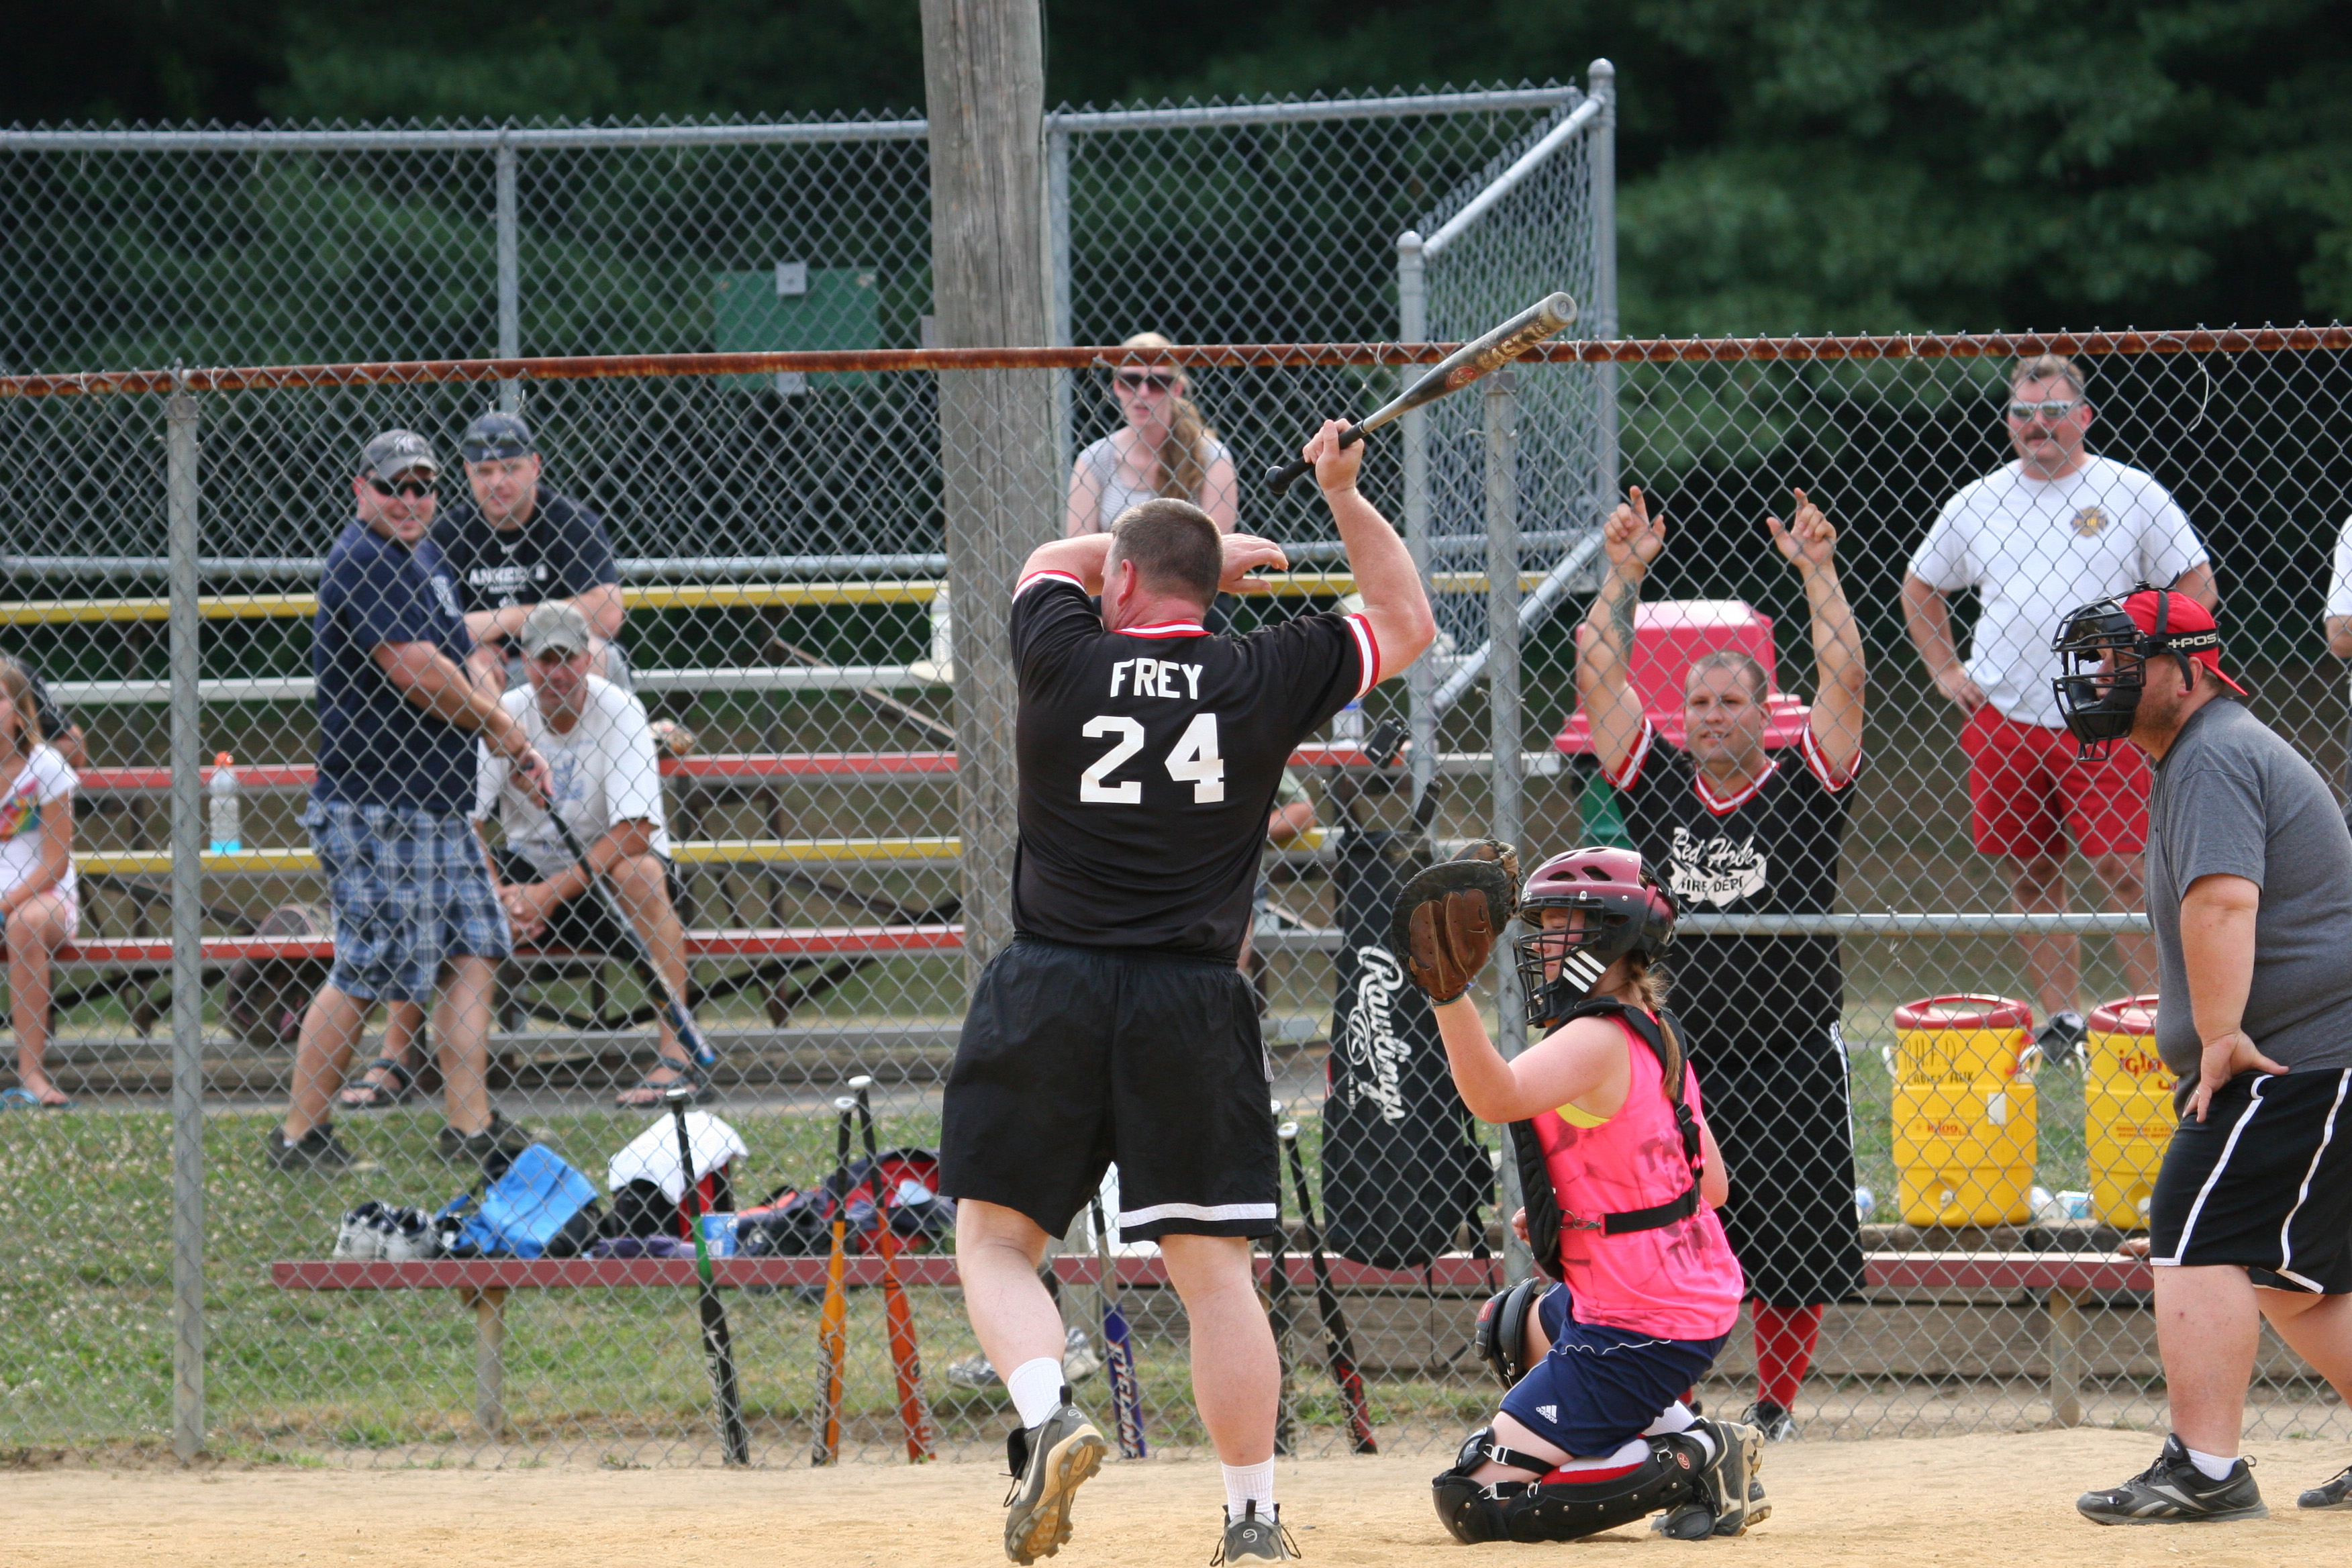 Fireman Rob Frey reacts to an inside fastball from high school all-star pitcher Elizabeth Brisley. The uniformed services were facing fast-pitch softball for the first time.